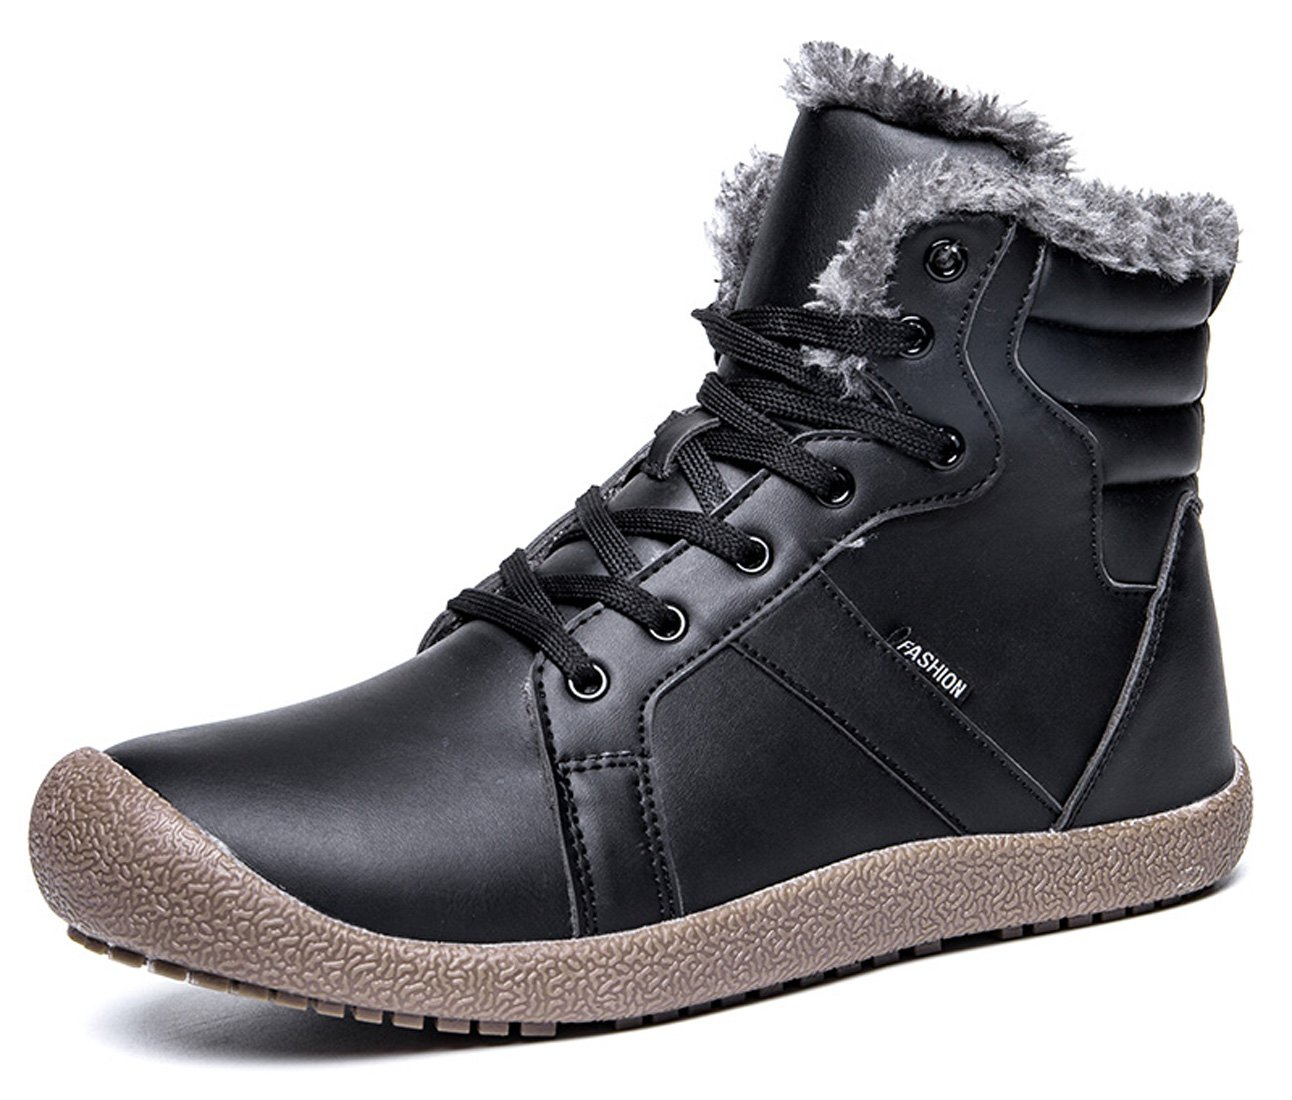 Santimon Womens Mens Winter Snow Boots Leather Waterproof Outdoor Ankle Booties Classic Comfortable Warm Sneaker Shoes Black 12.5 D(M) US